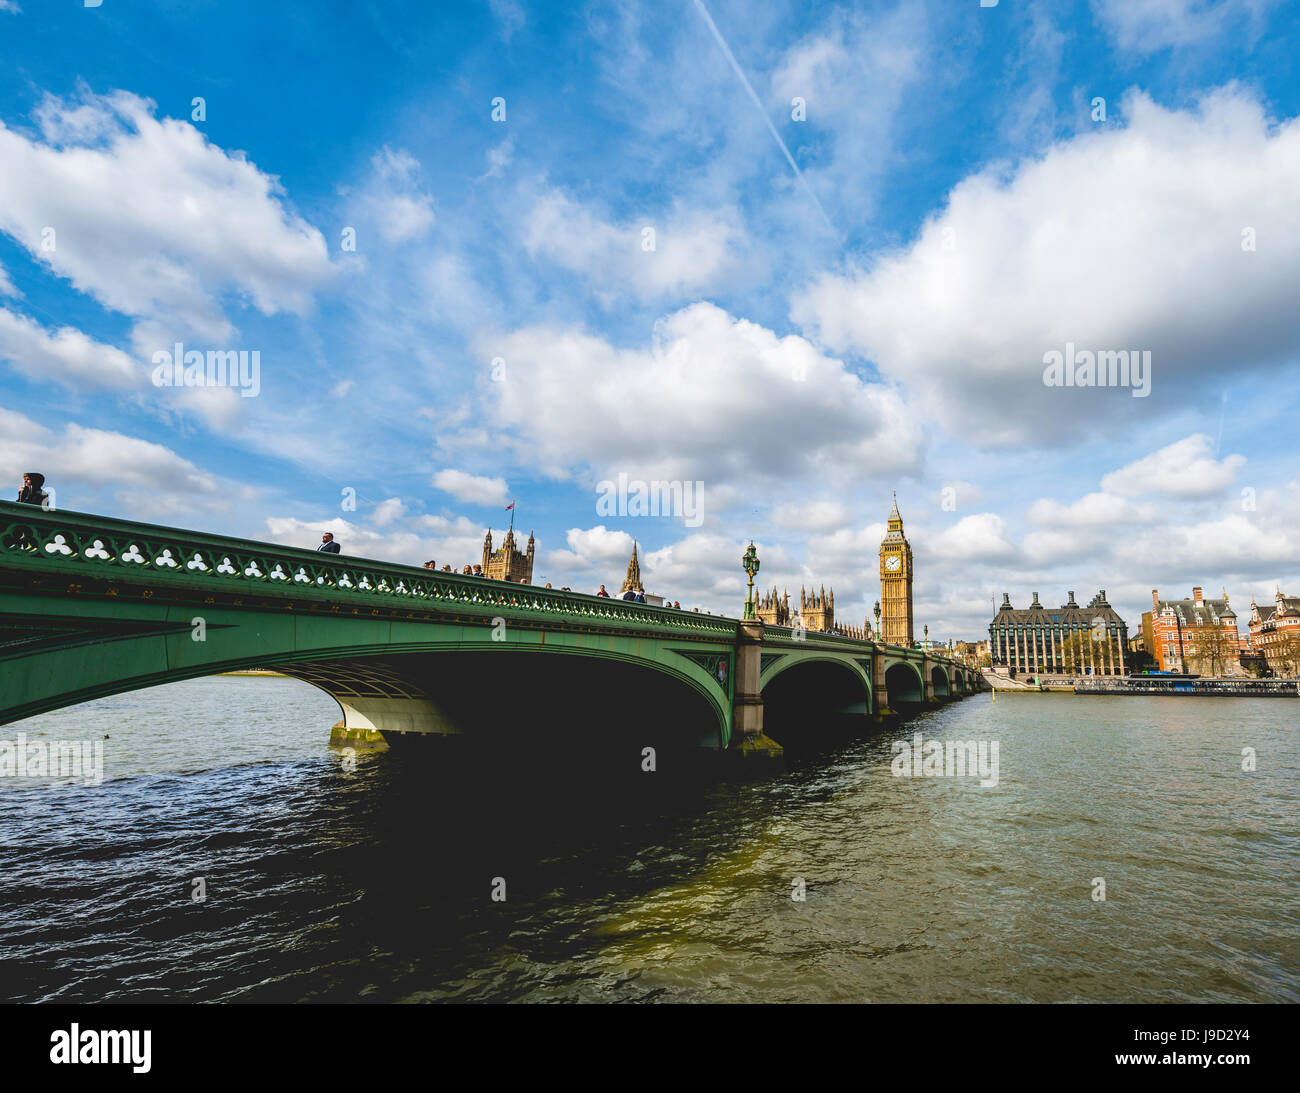 Big Ben, Westminster Bridge, River Thames, London, England, Great Britain - Stock Image